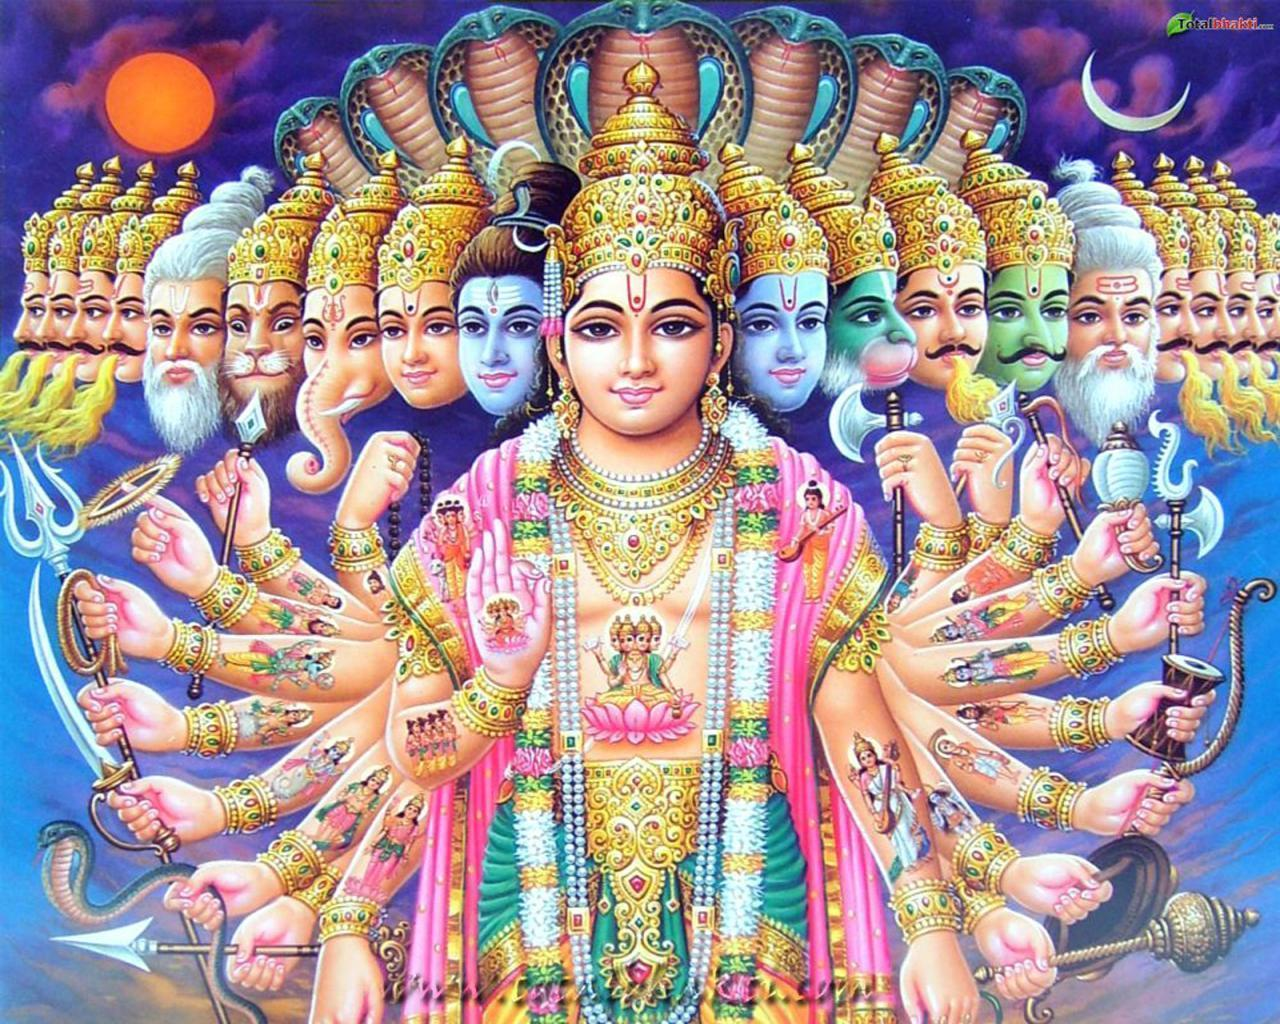 vishnu wallpaper, Hindu wallpaper, Lord Vishnu Avatar, blue and